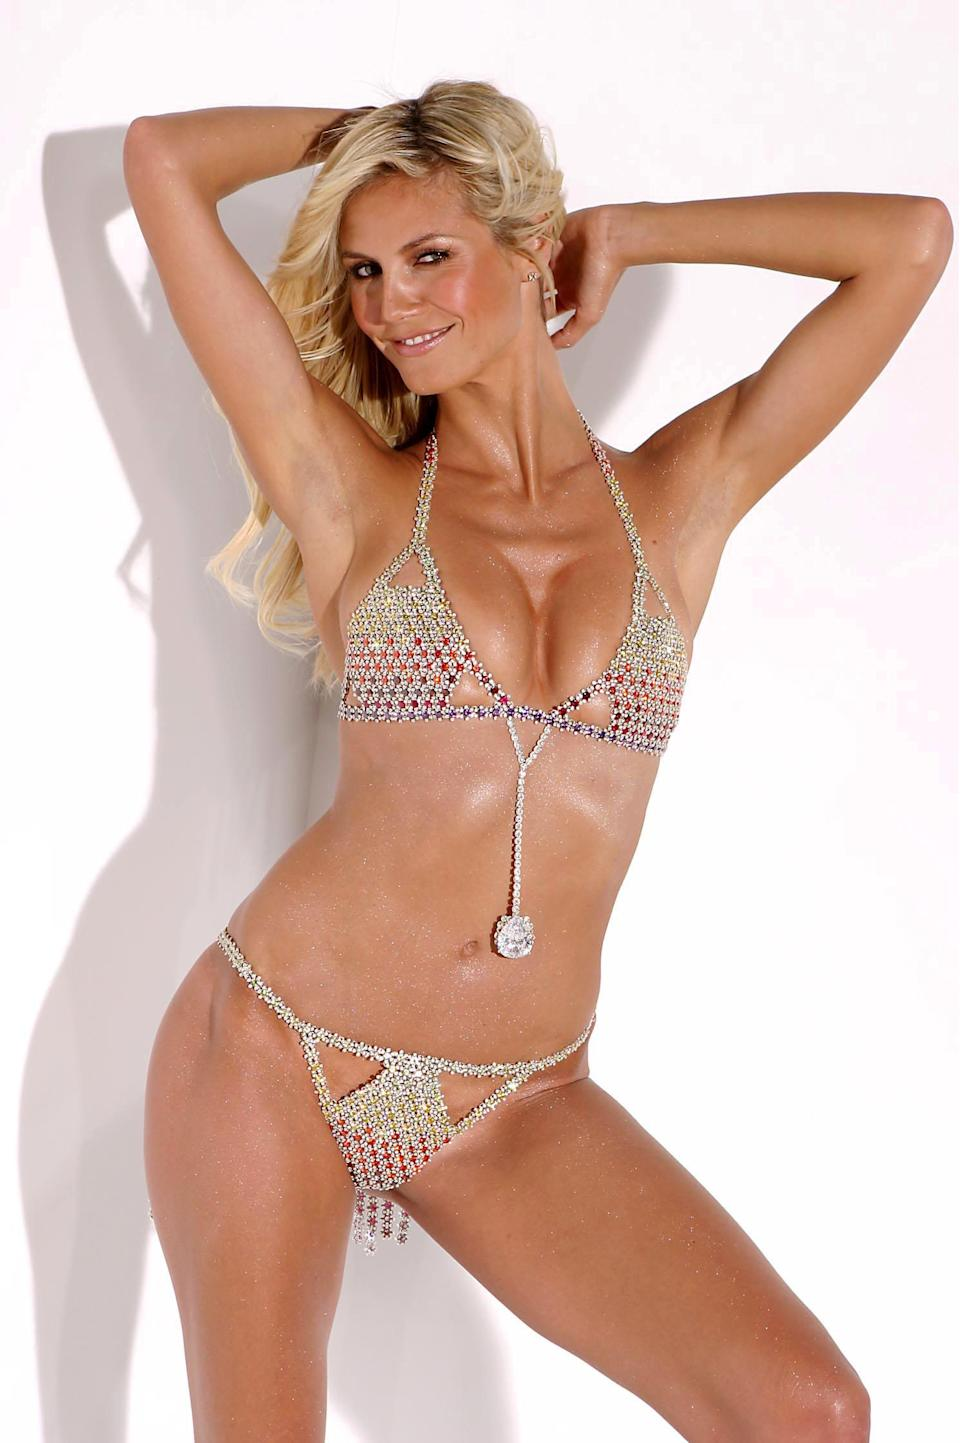 <p>The Very Sexy Fantasy Bra, costing $11 million, was modelled by German model Heidi Klum in 2003. <em>[Photo: Rex Features]</em> </p>